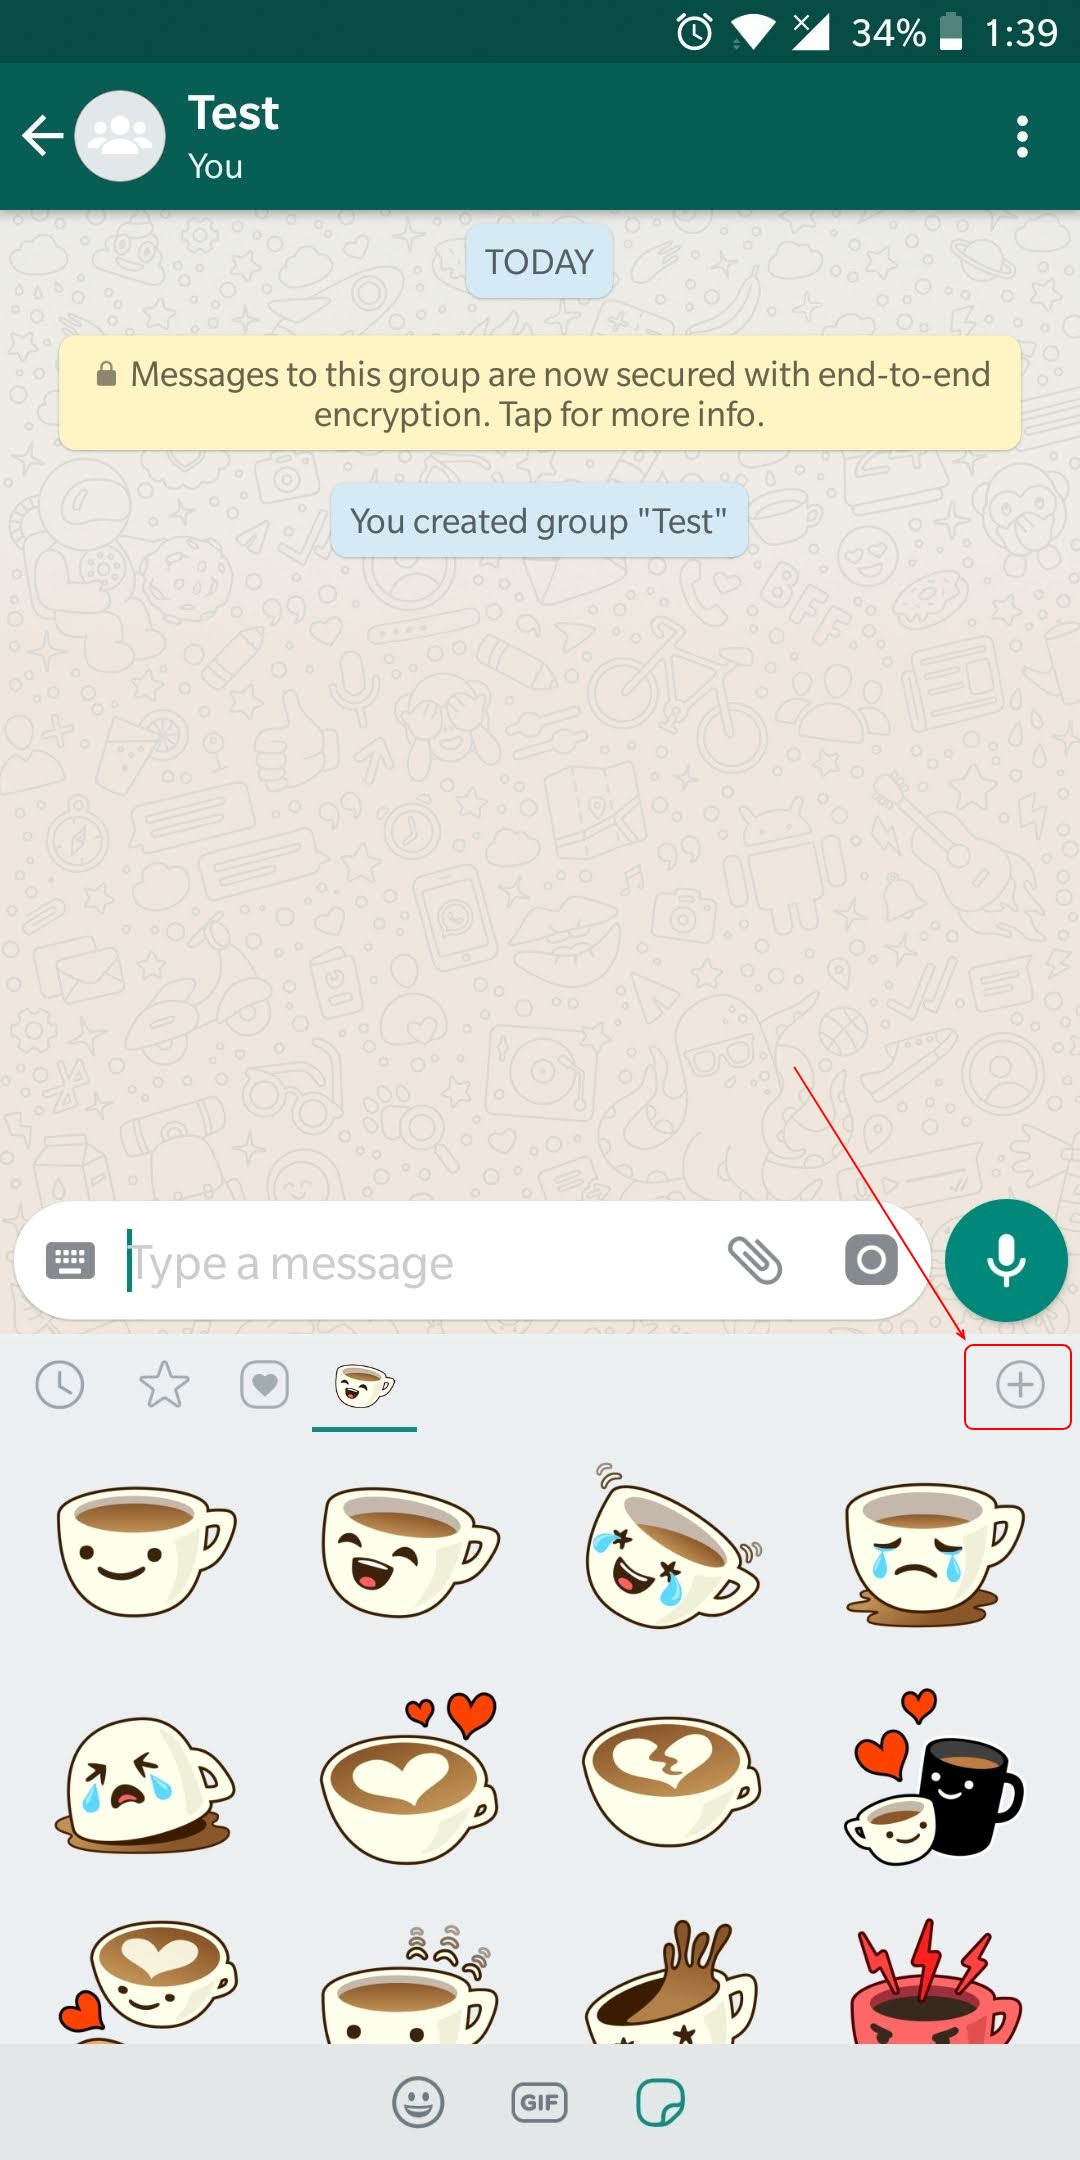 How to Send WhatsApp Stickers on Android - DroidViews